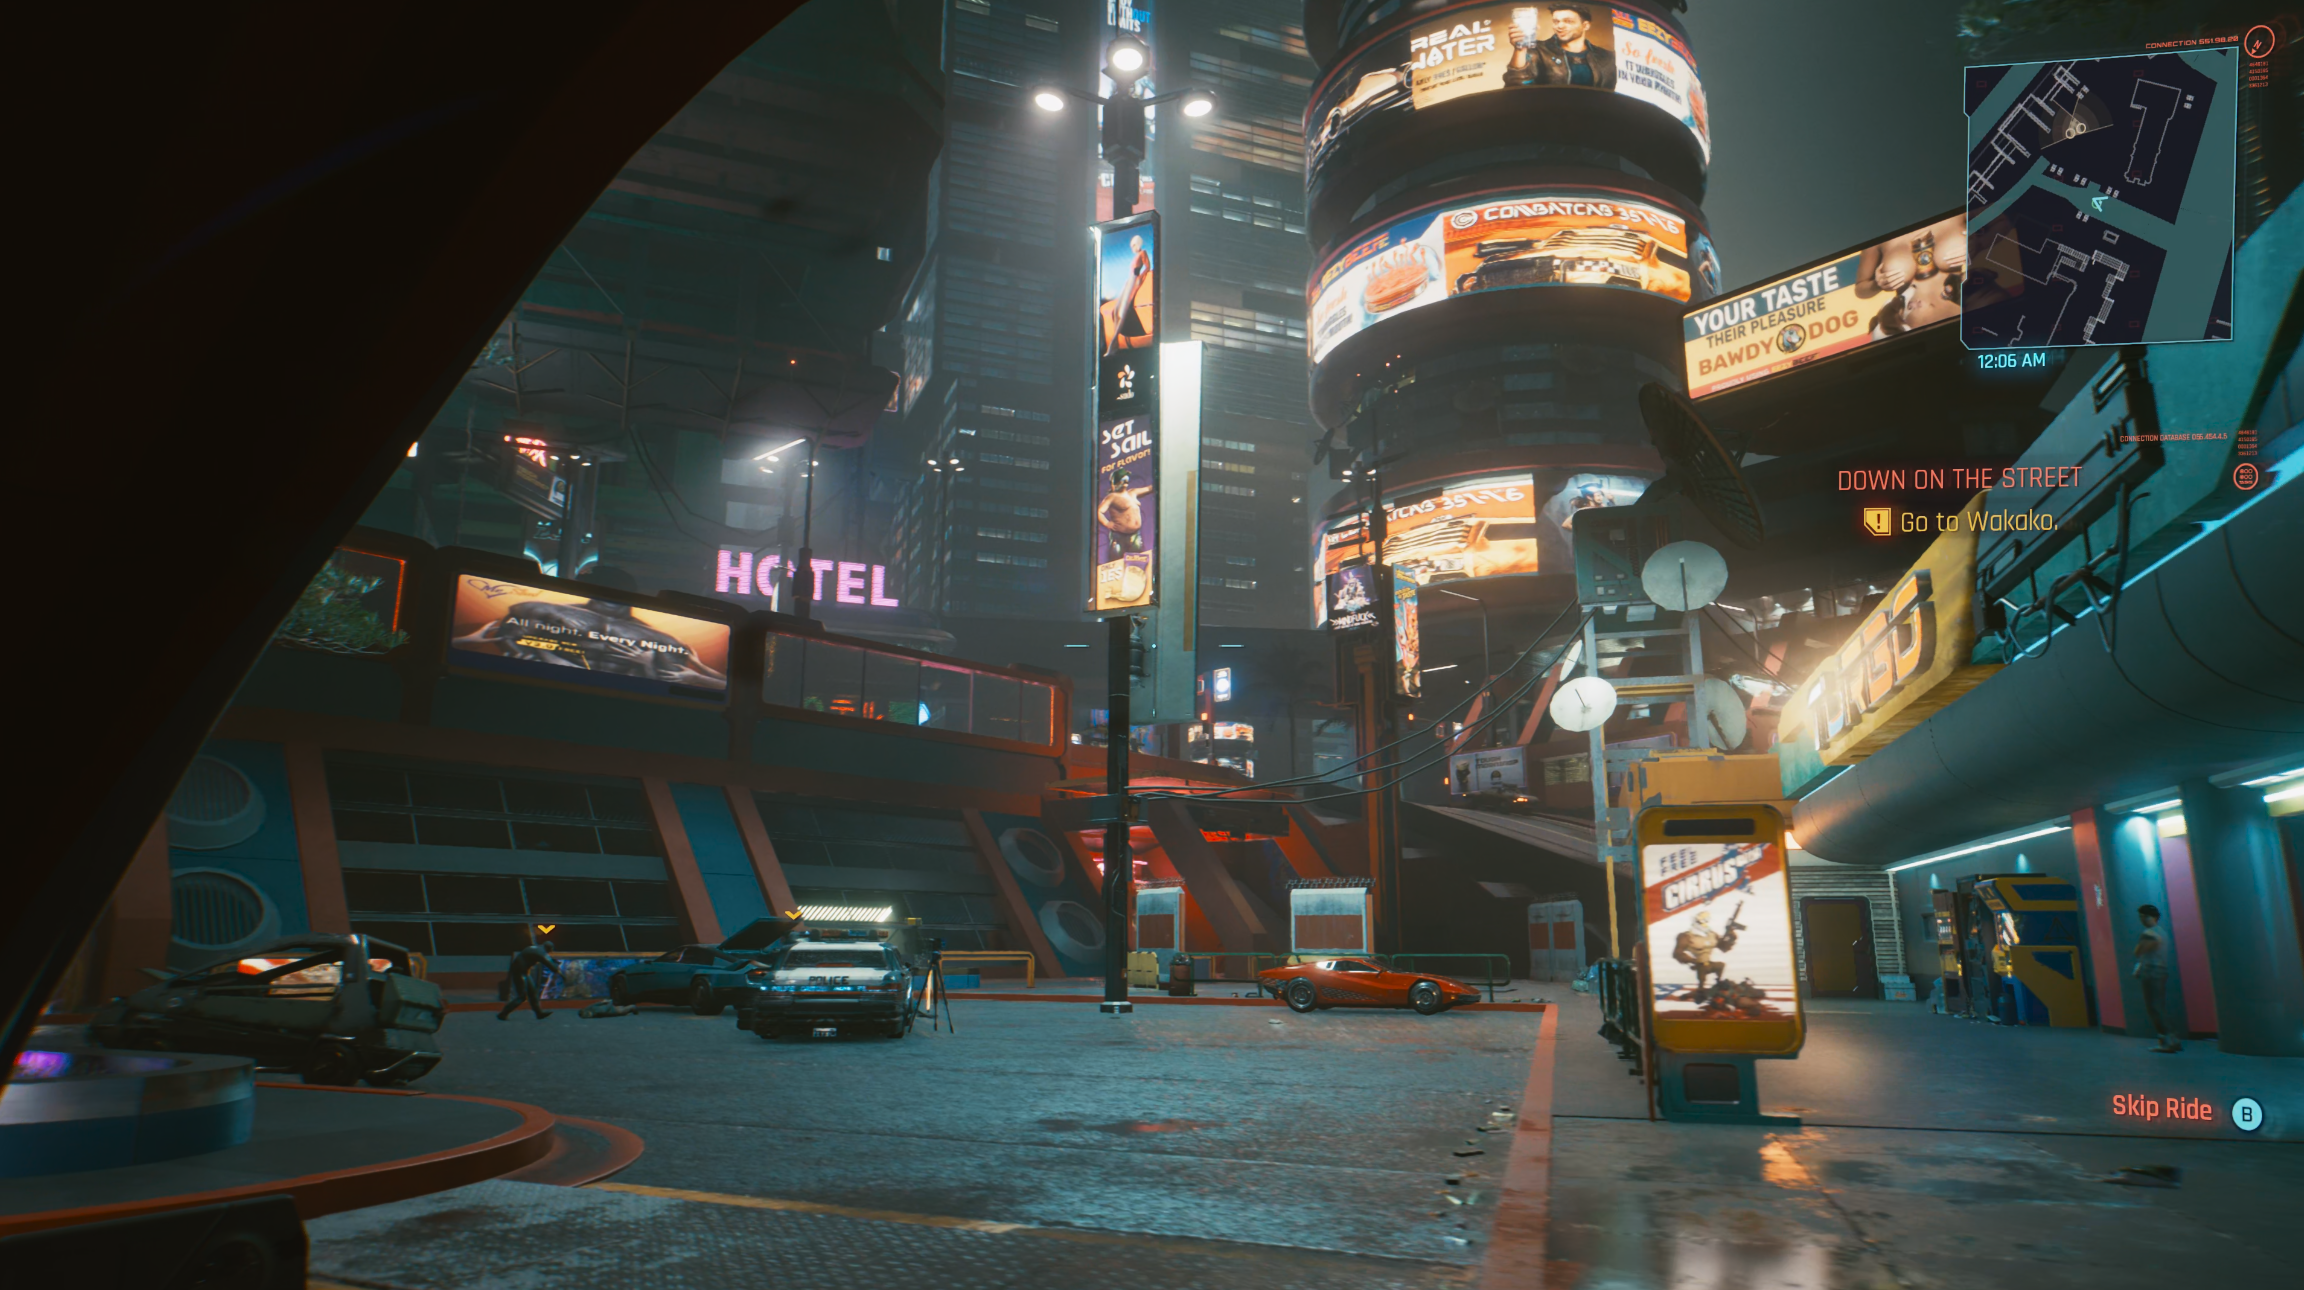 Video: Cyberpunk 2077 has its glitches, but still worth playing